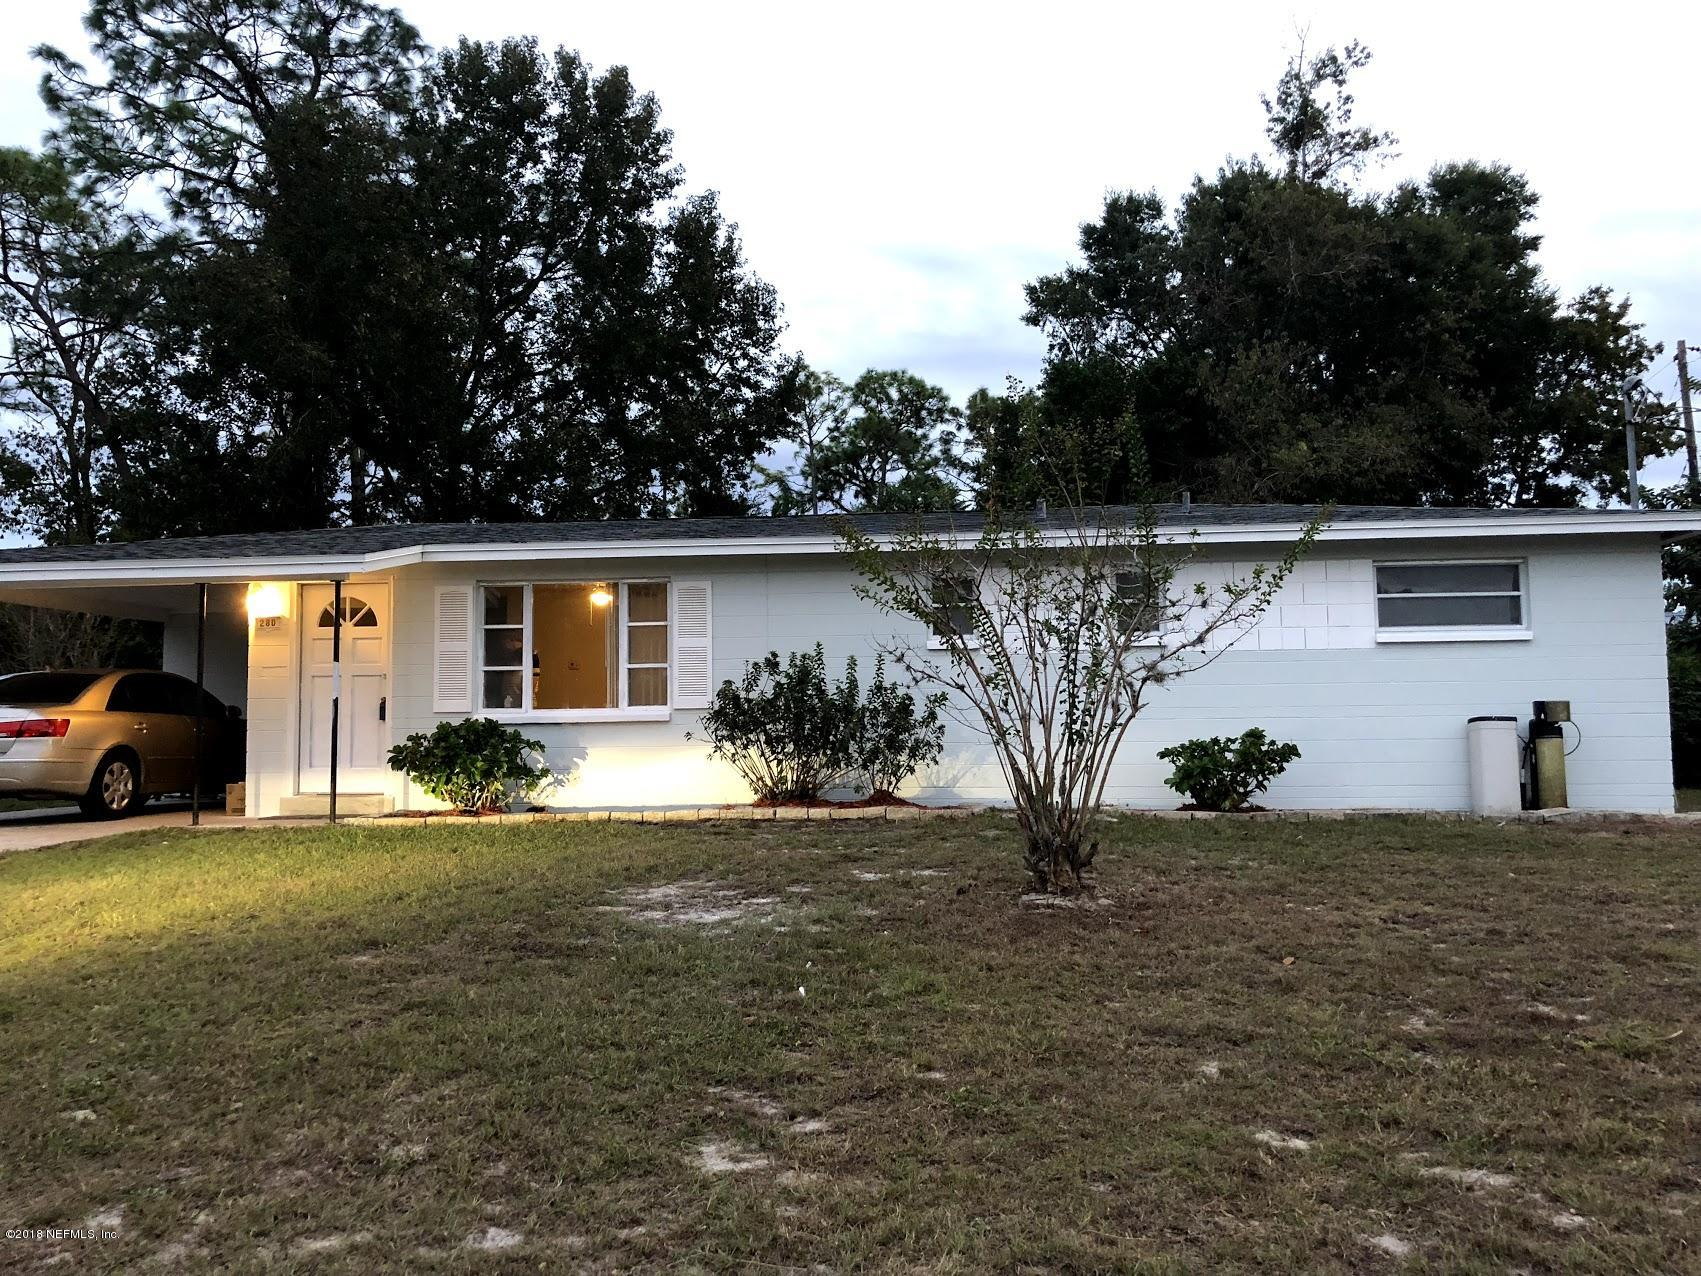 280 ARORA, ORANGE PARK, FLORIDA 32073, 3 Bedrooms Bedrooms, ,2 BathroomsBathrooms,Residential - single family,For sale,ARORA,965145